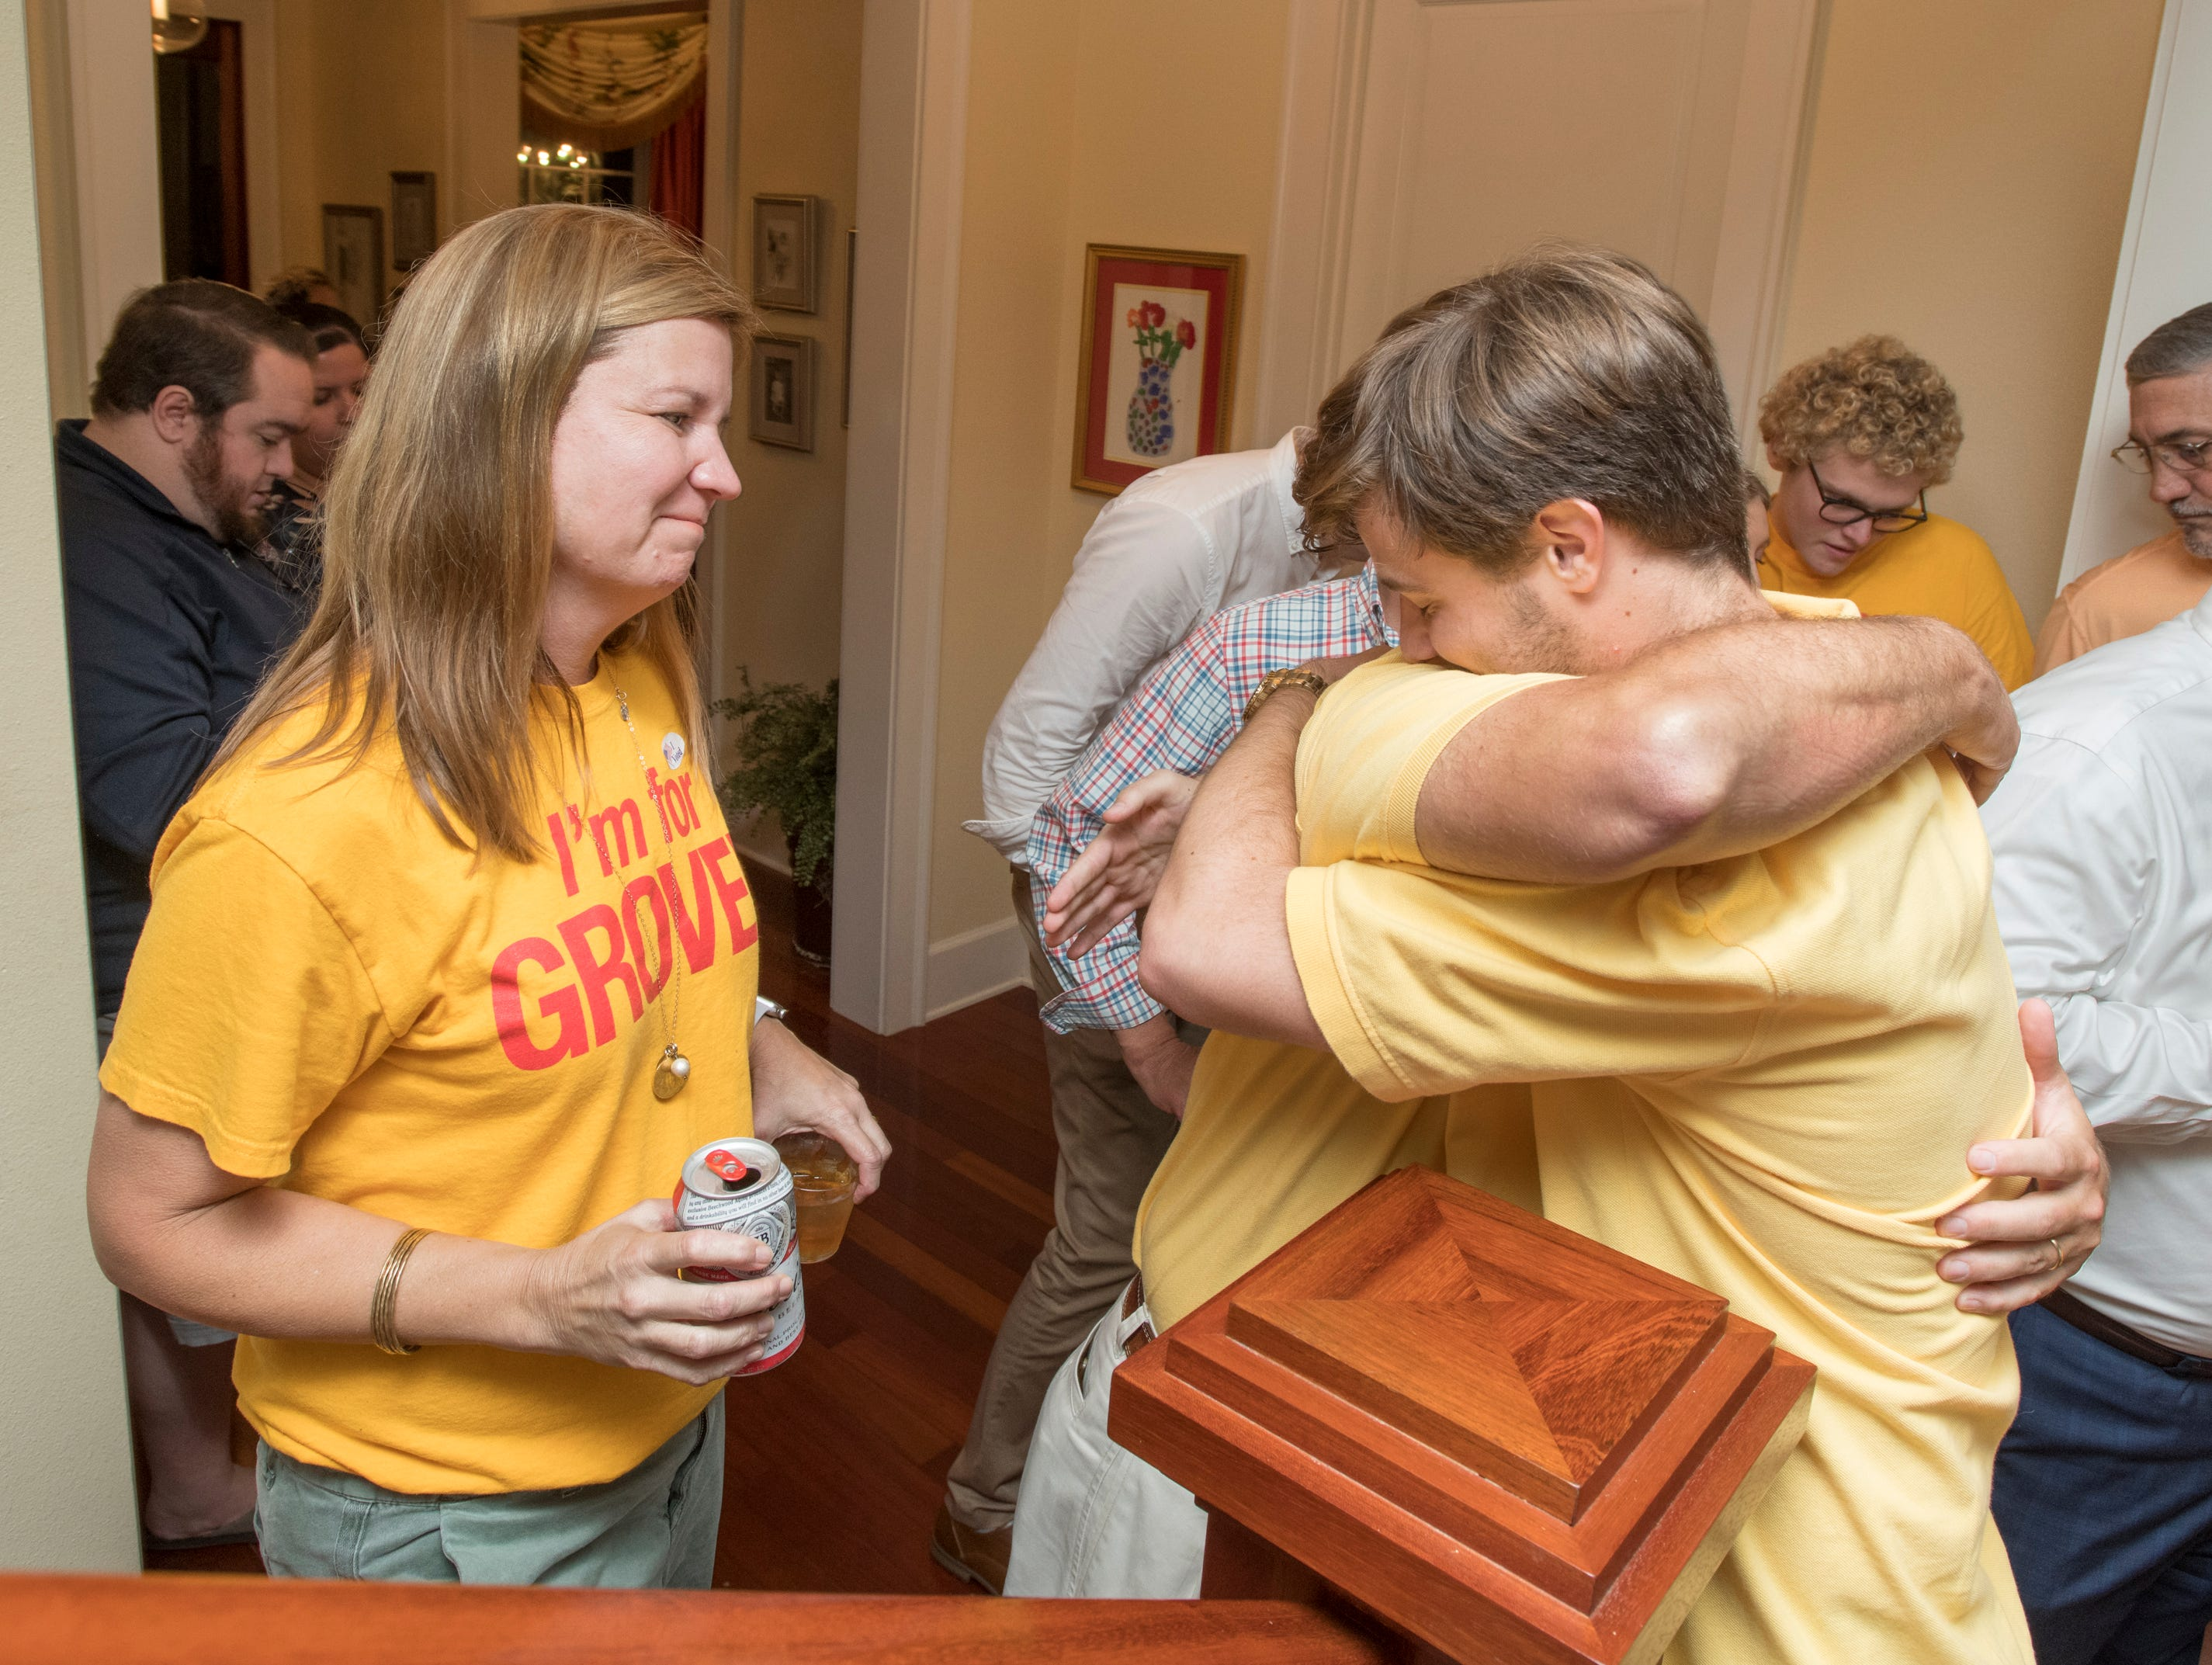 Jill Robinson looks on as her husband Mayor-elect Grover Robinson IV gets a hug from their son Grover V after being declared the winner on Election Night in Pensacola on Tuesday, November 6, 2018.